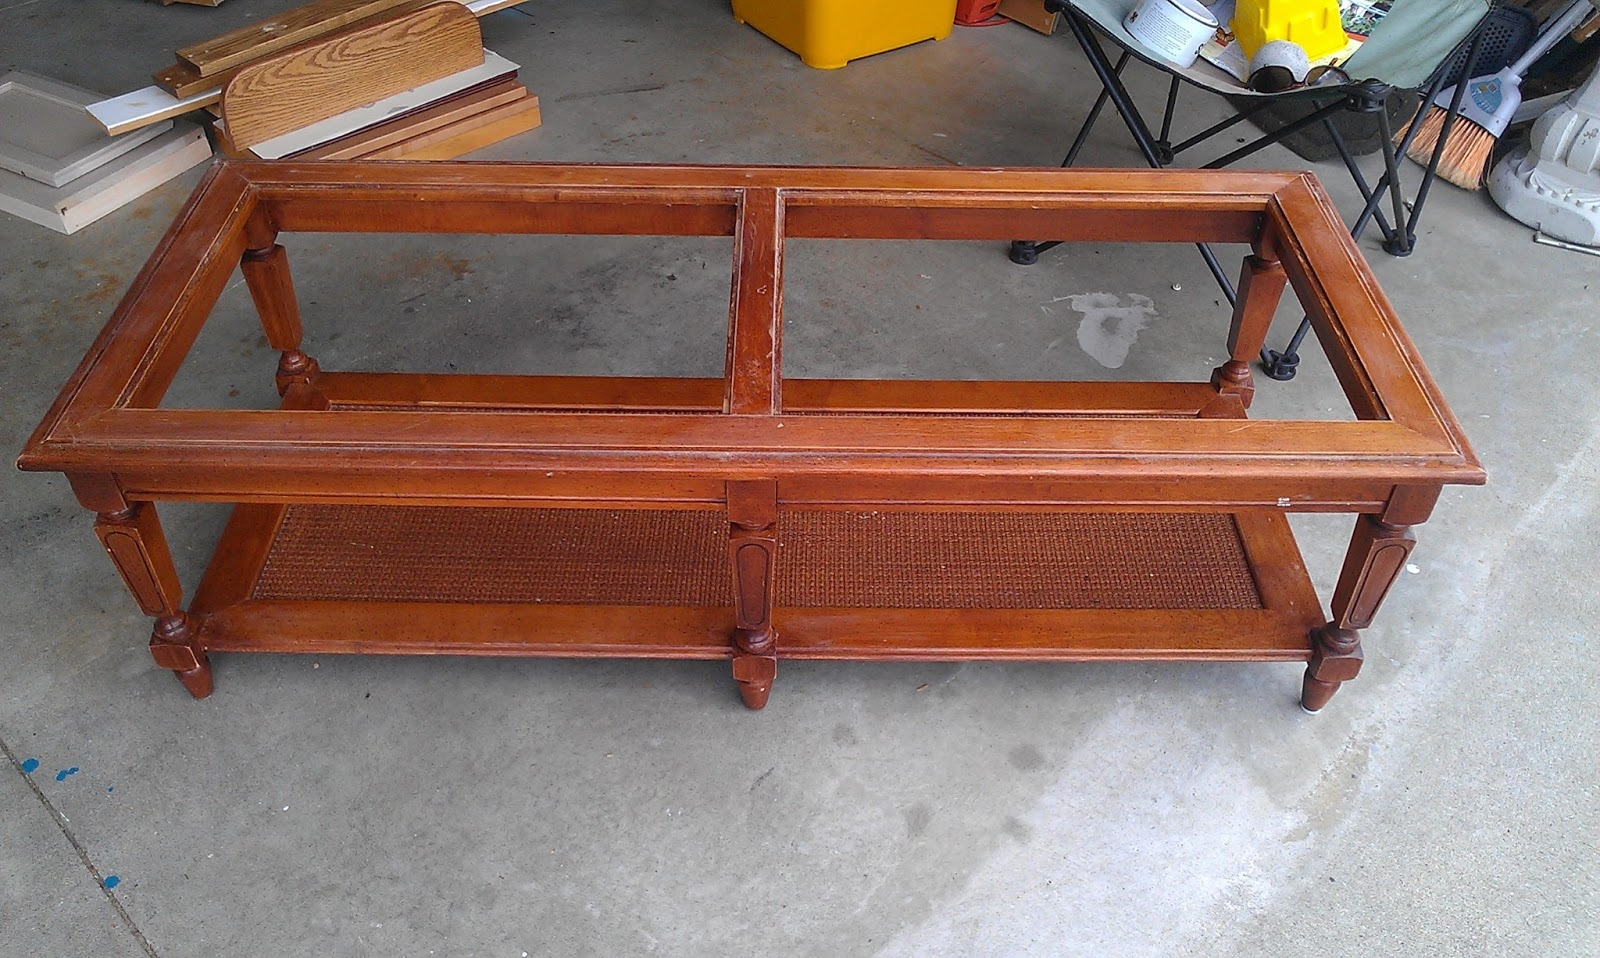 Thrifty Treasures: Coffee table makeover